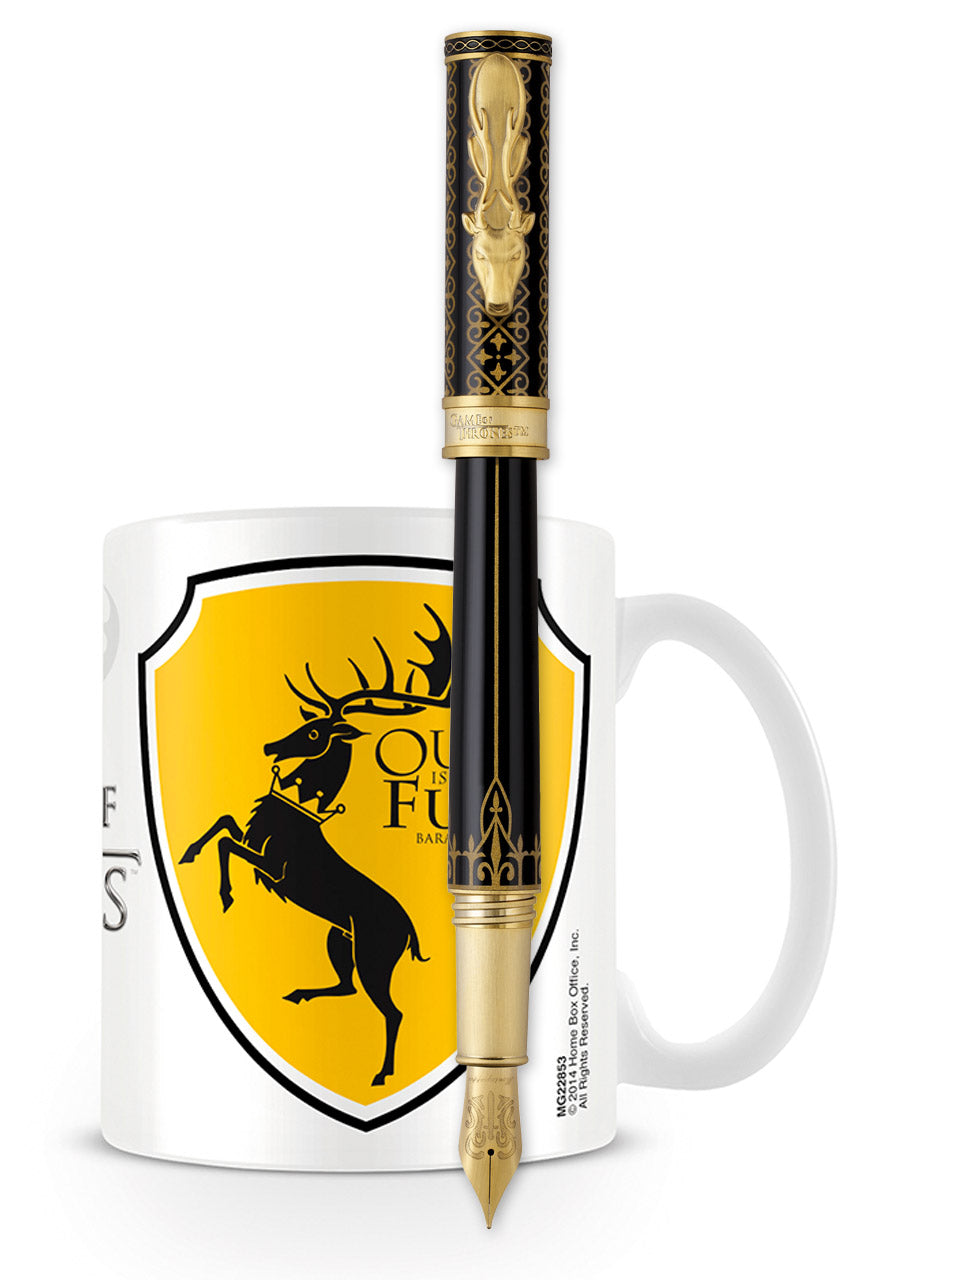 Montegrappa Game of Thrones Fountain Pen - Baratheon